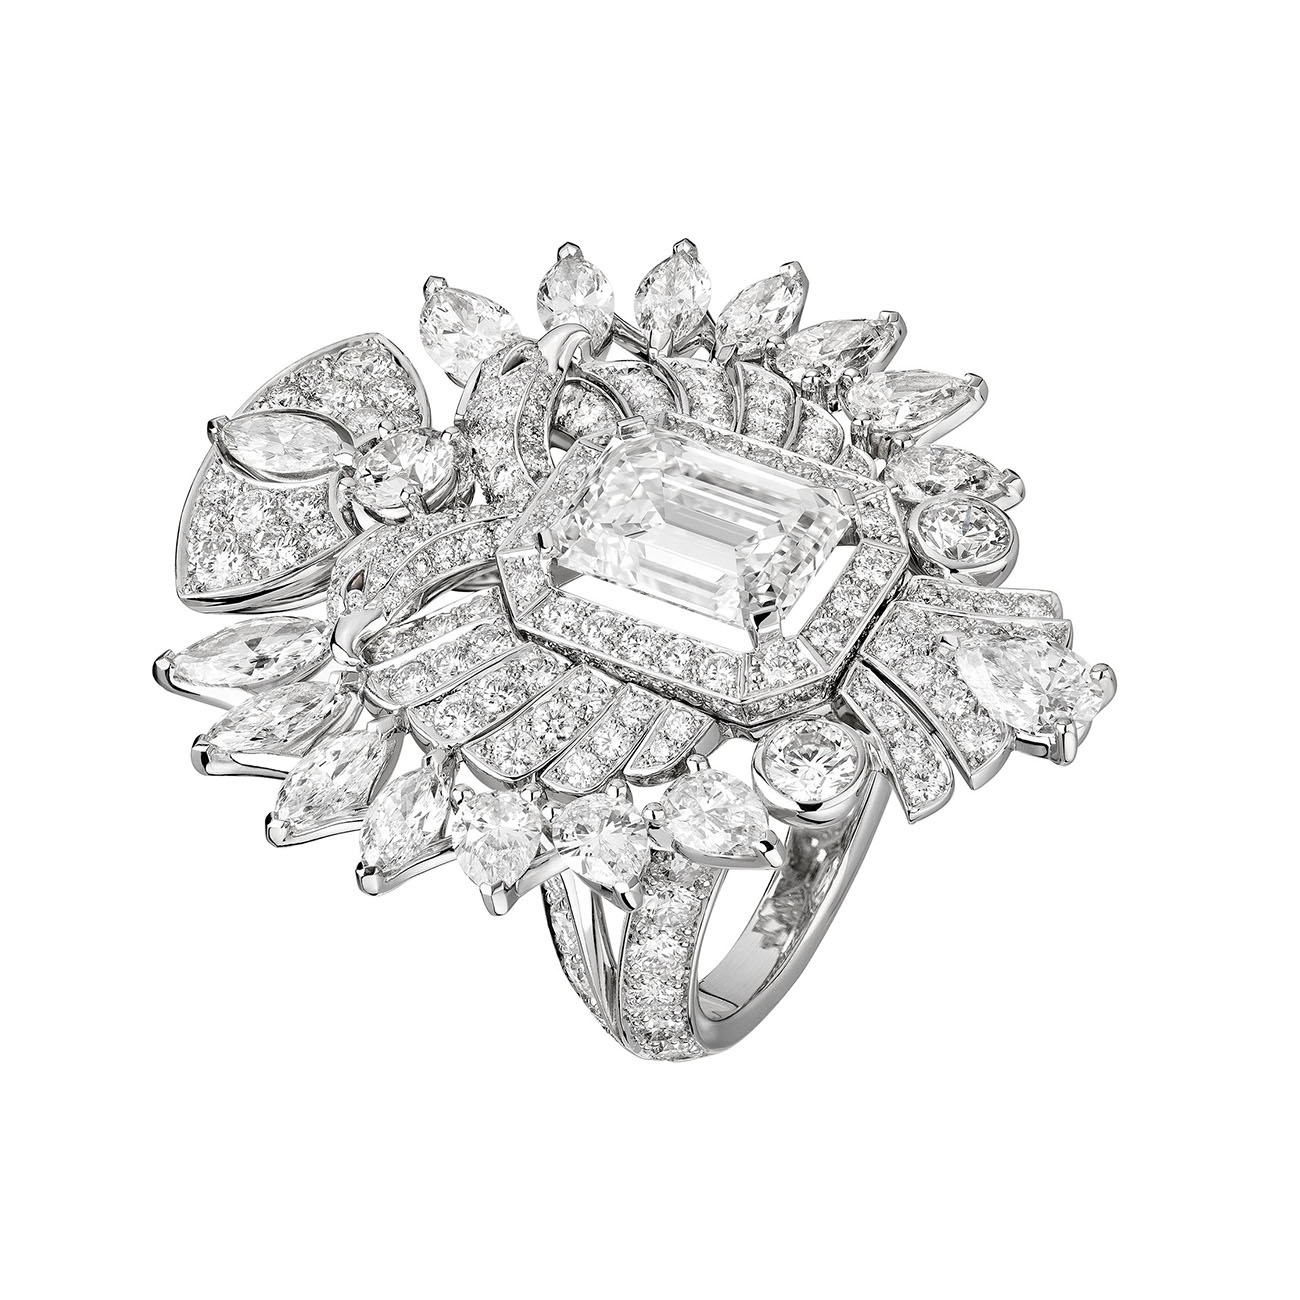 Chanel High Jewelry Collection Aigle Cambon ring